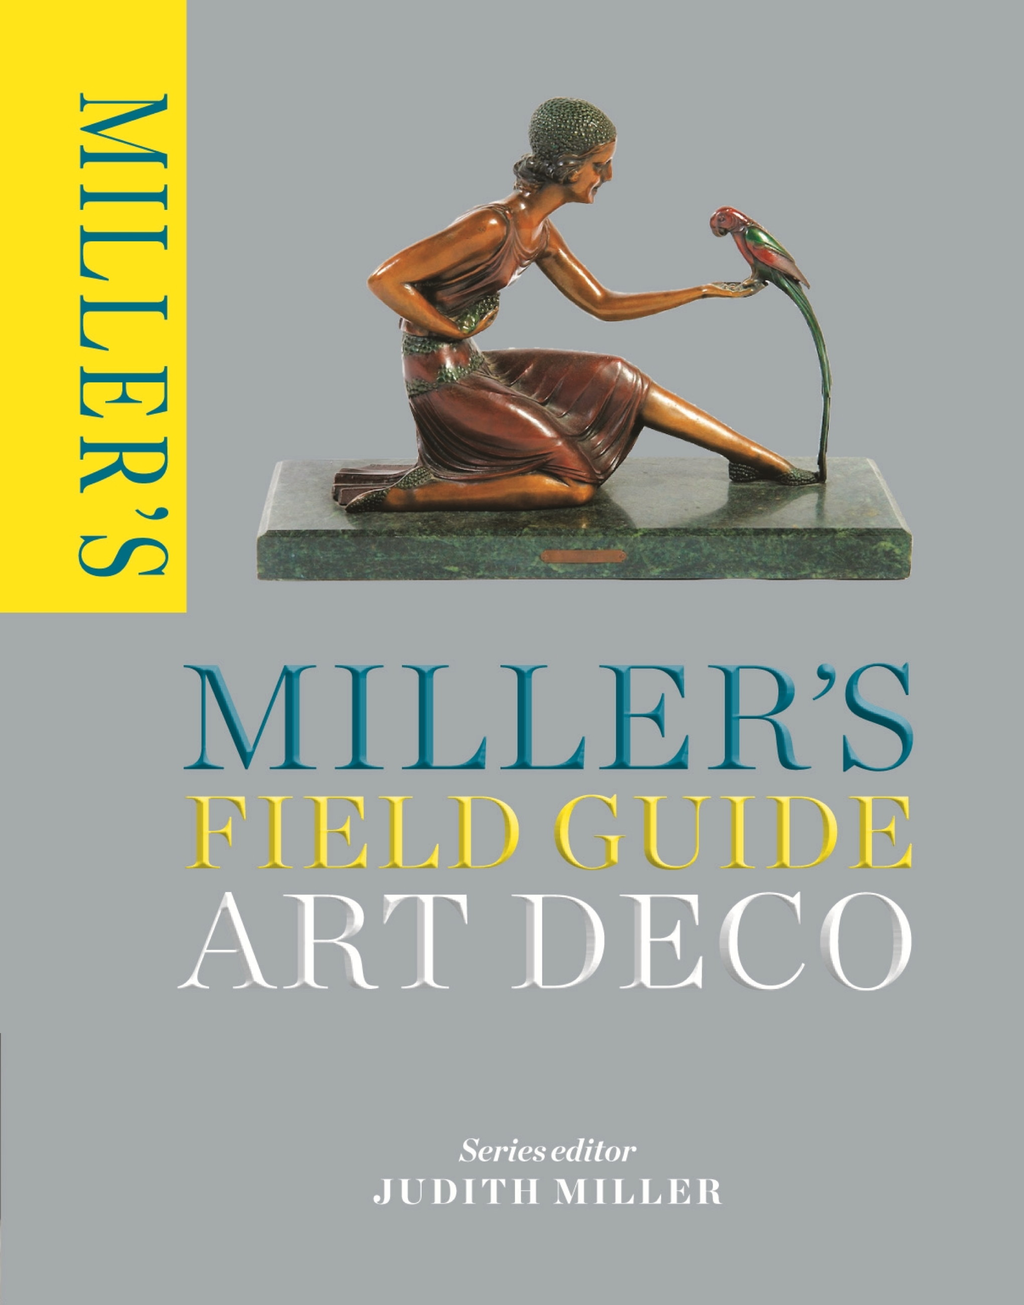 Miller's Field Guide: Art Deco